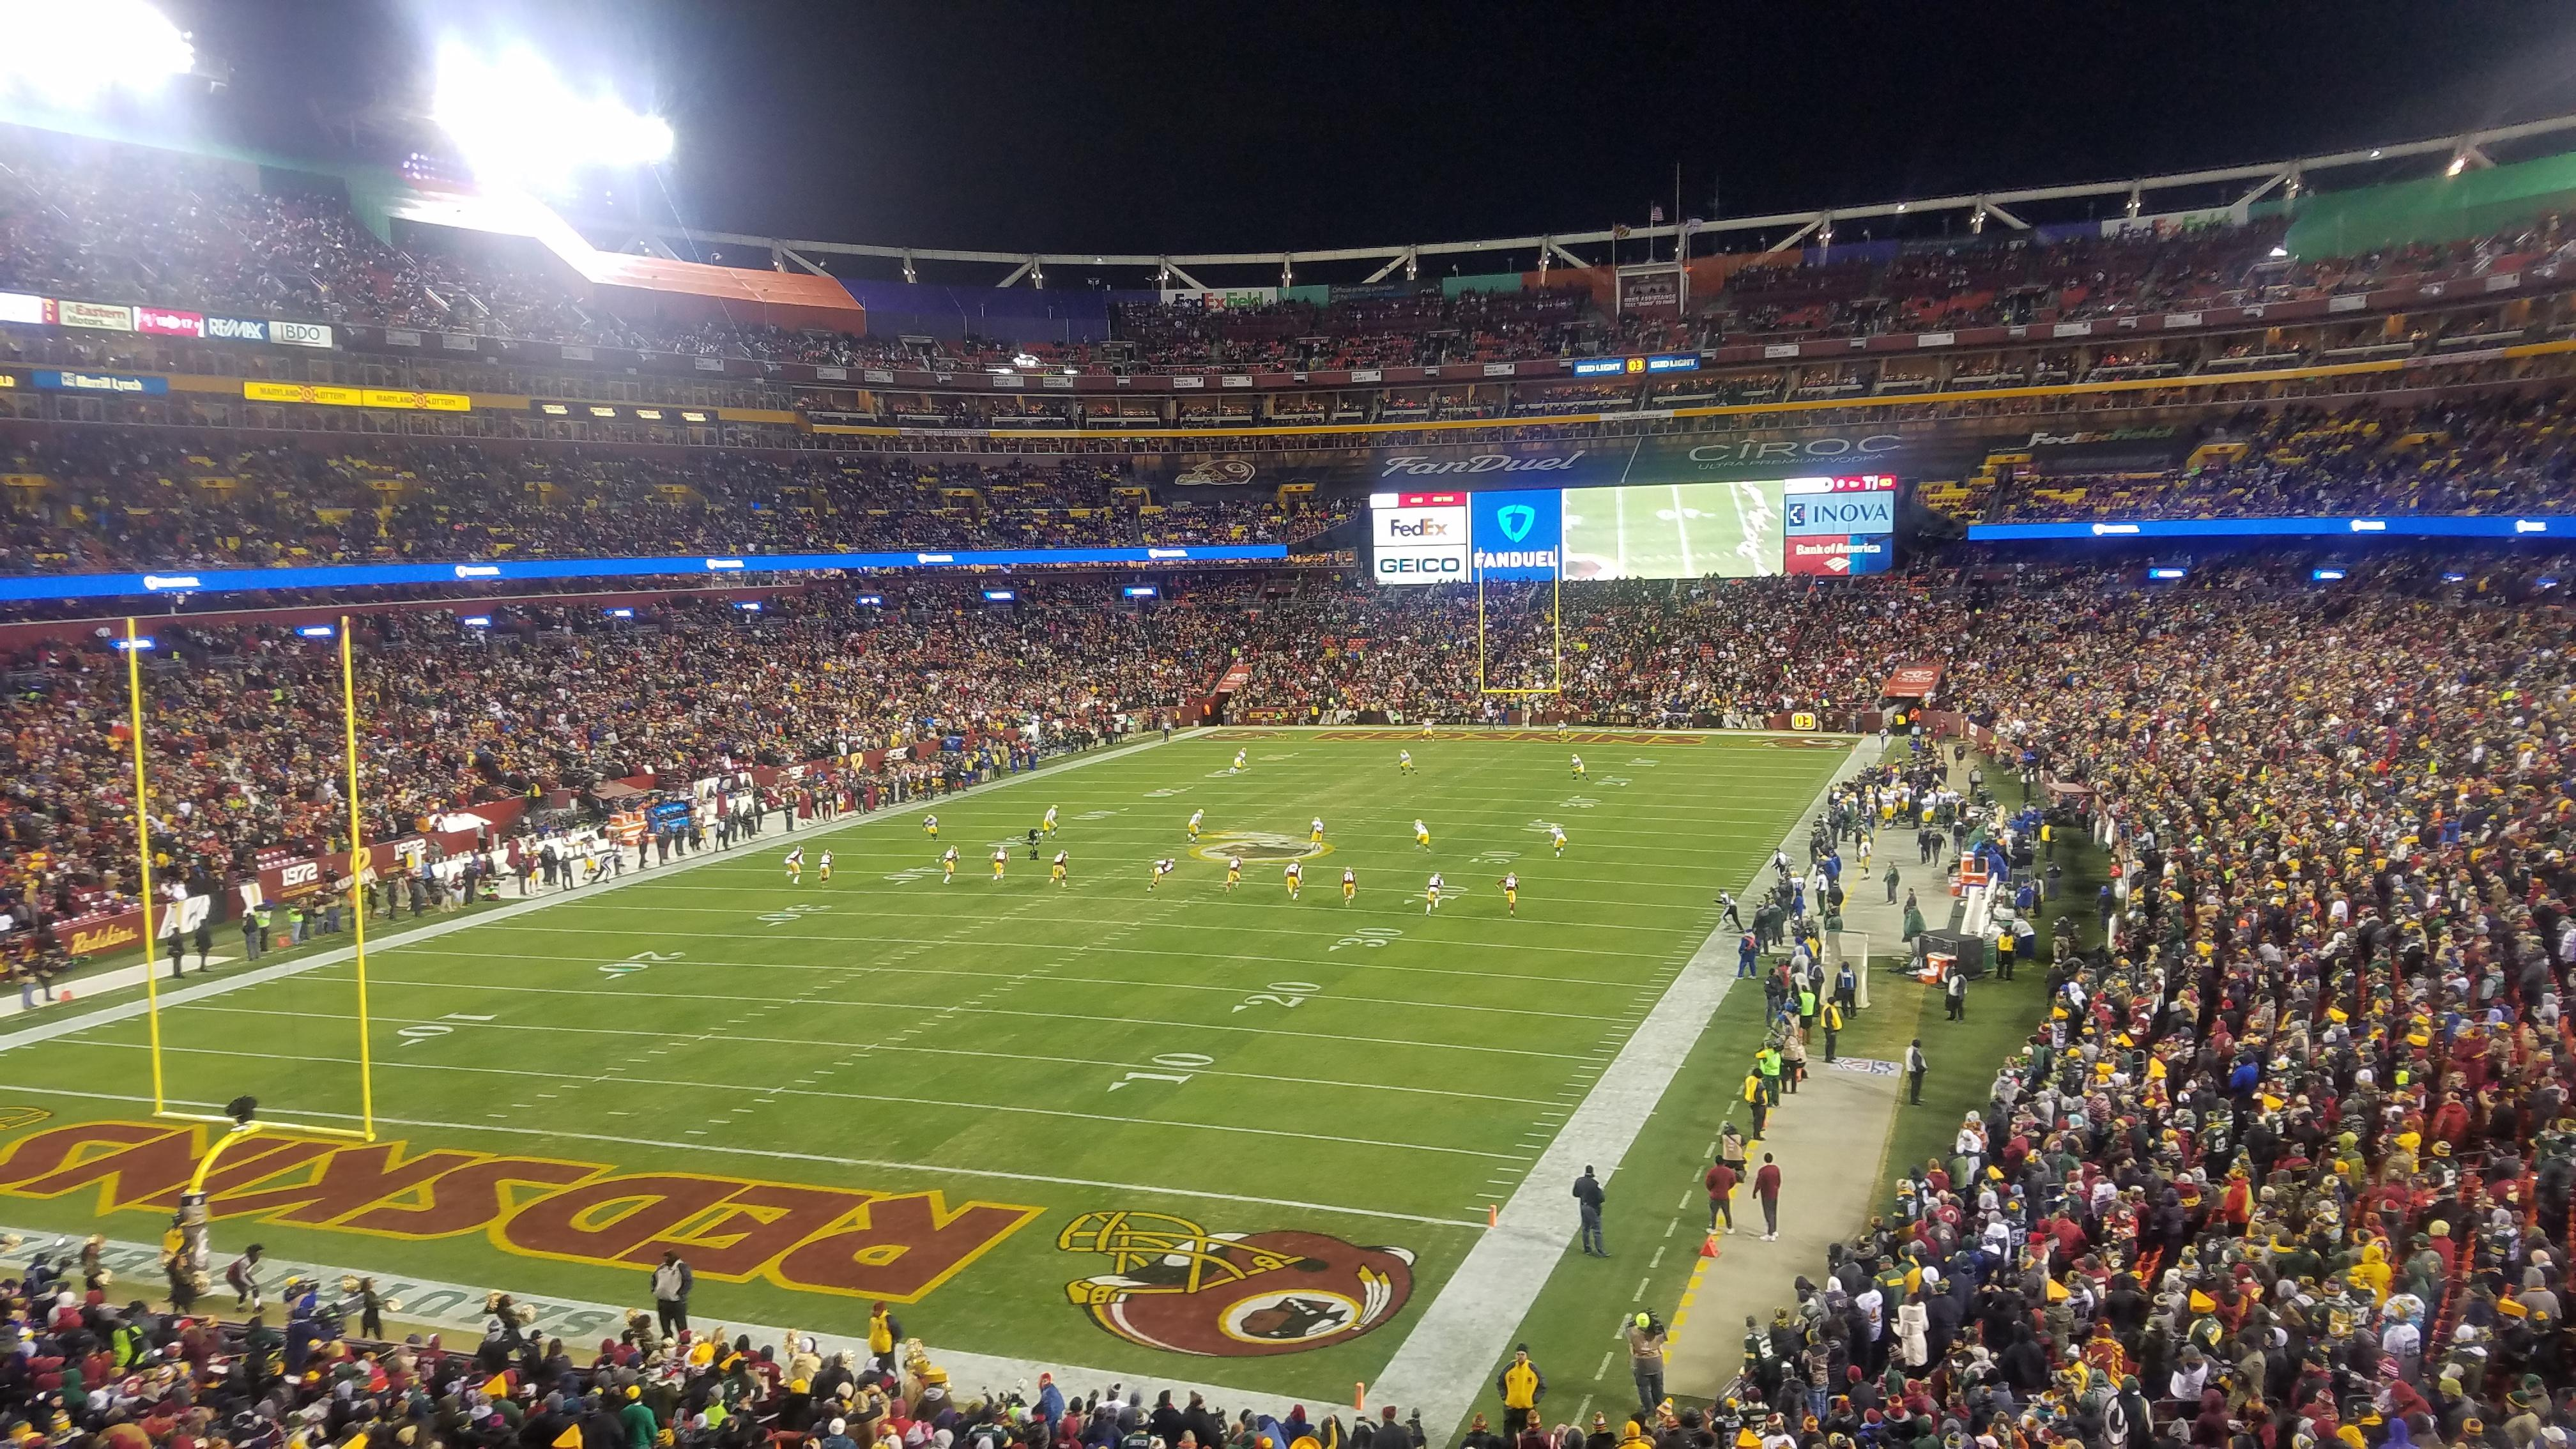 FedEx Field Section 329 Row 2 Seat 15